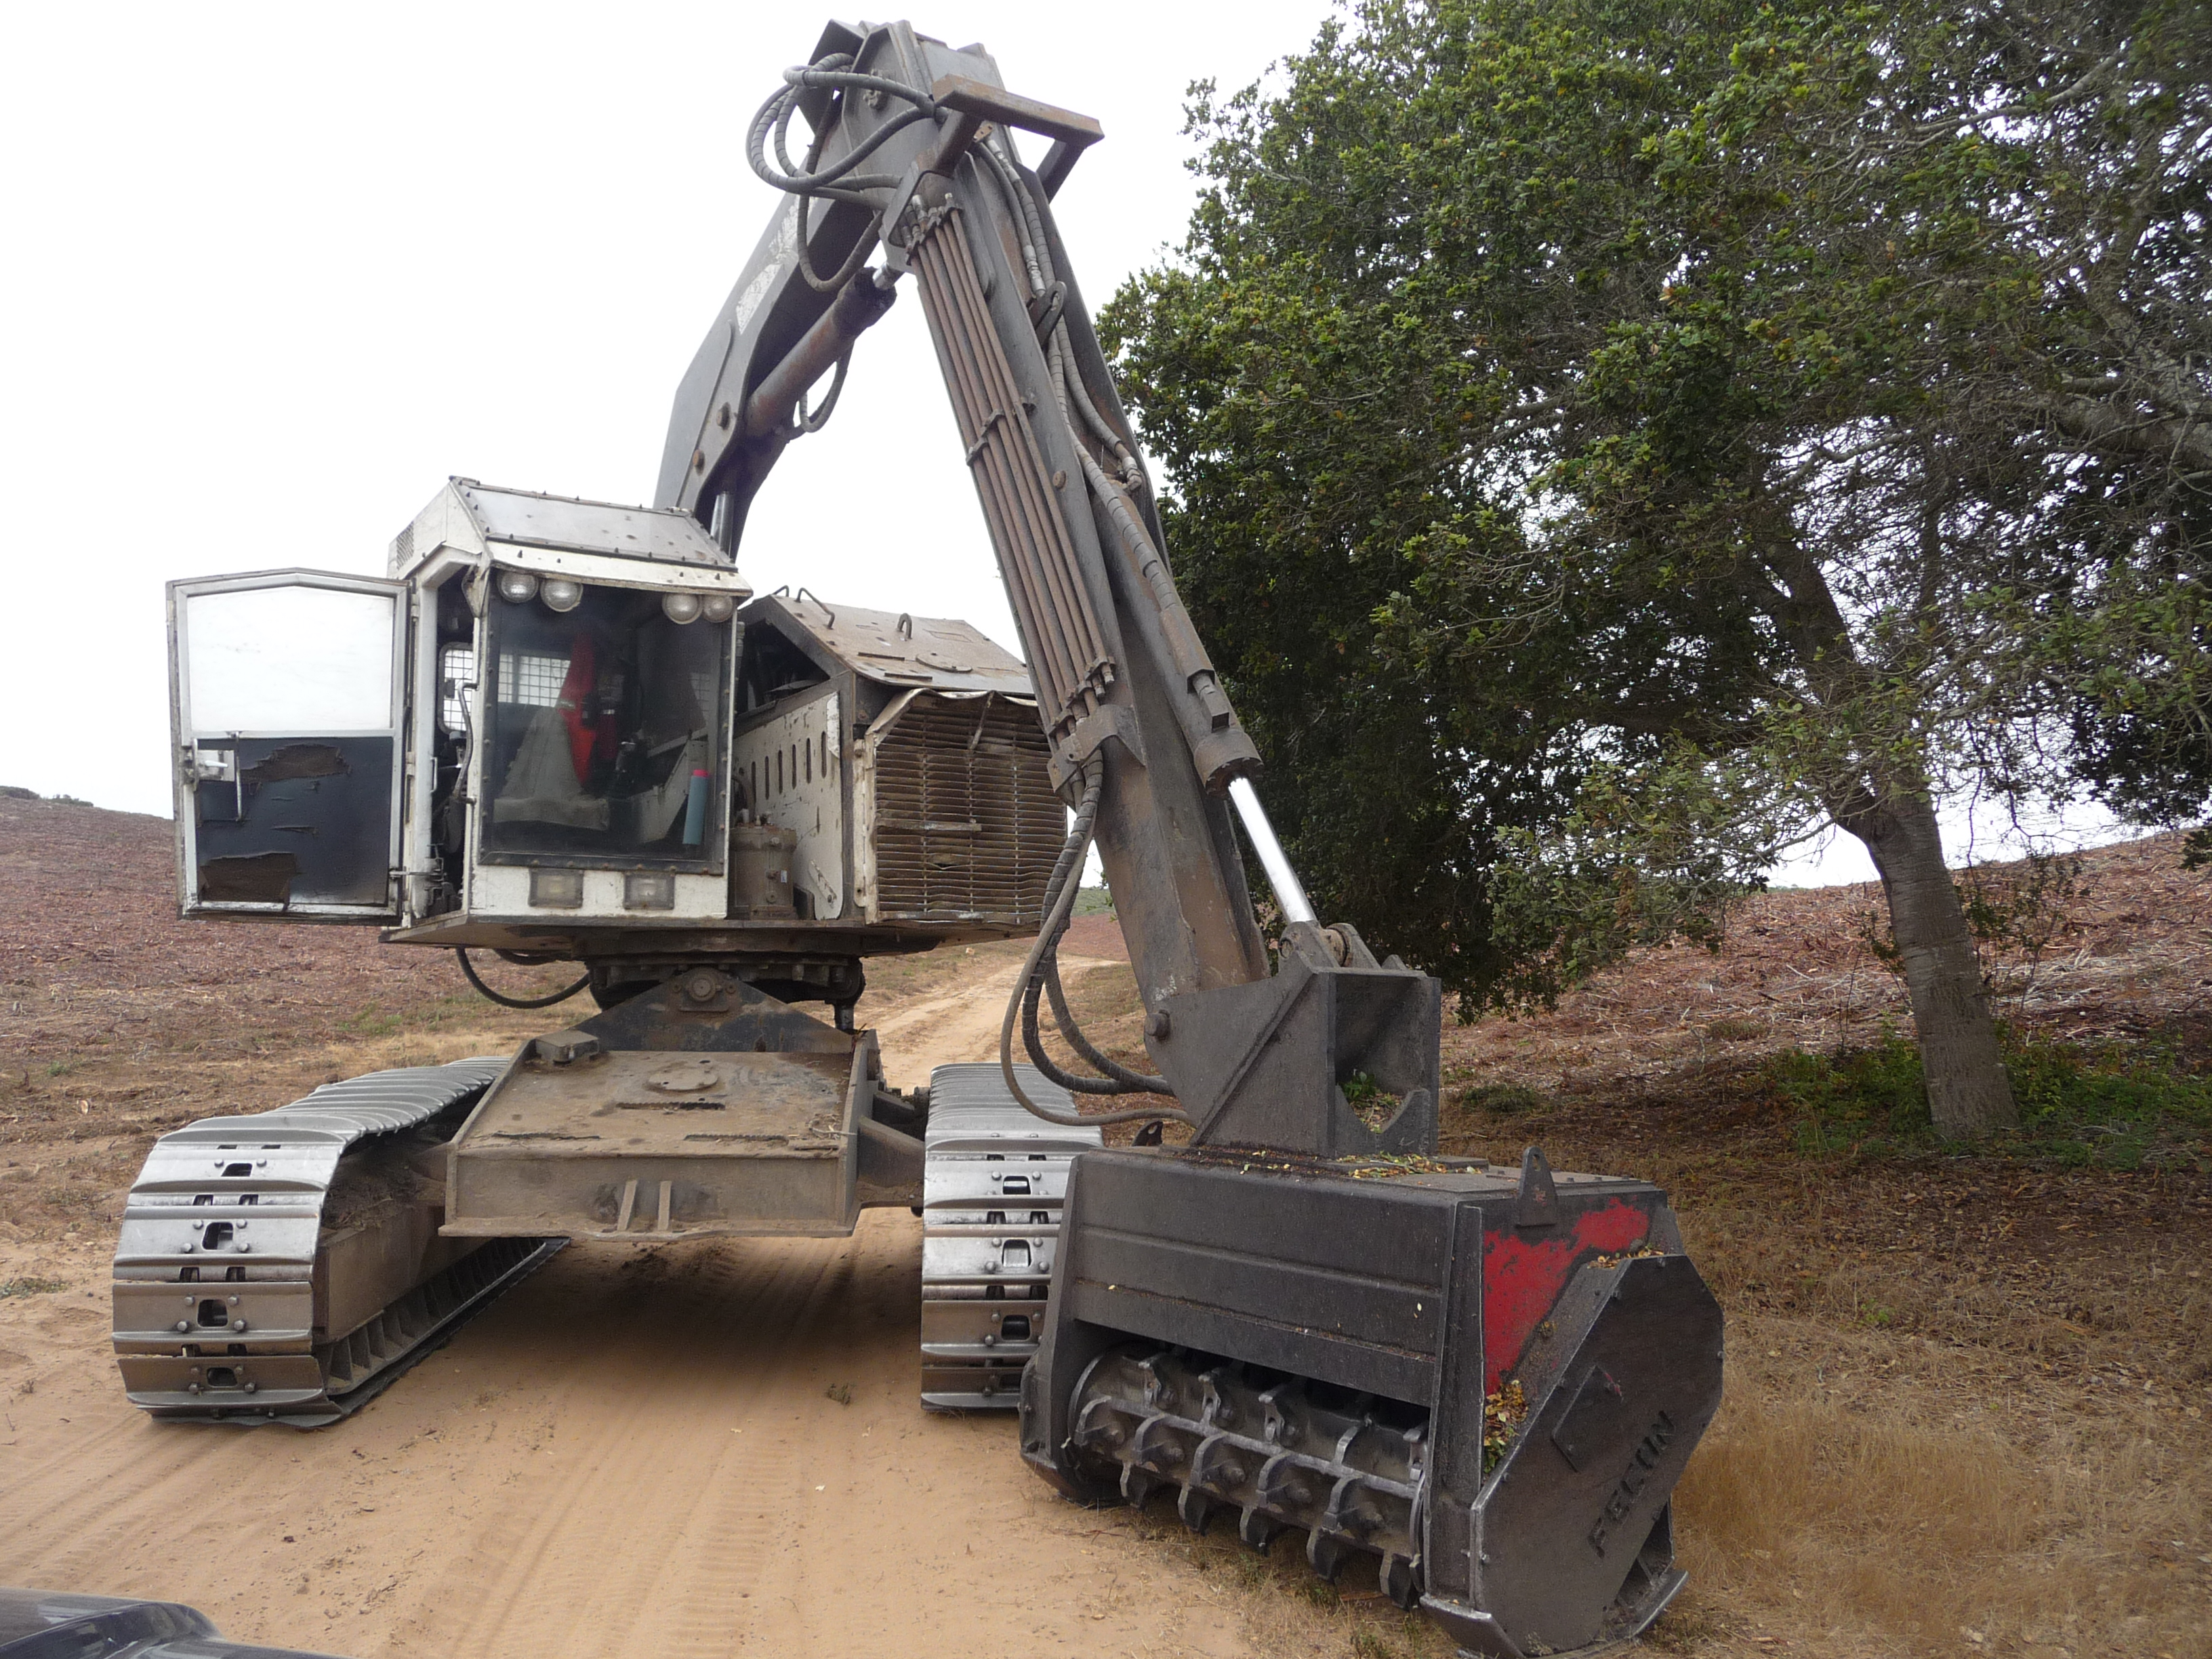 Vegetation removal equipment